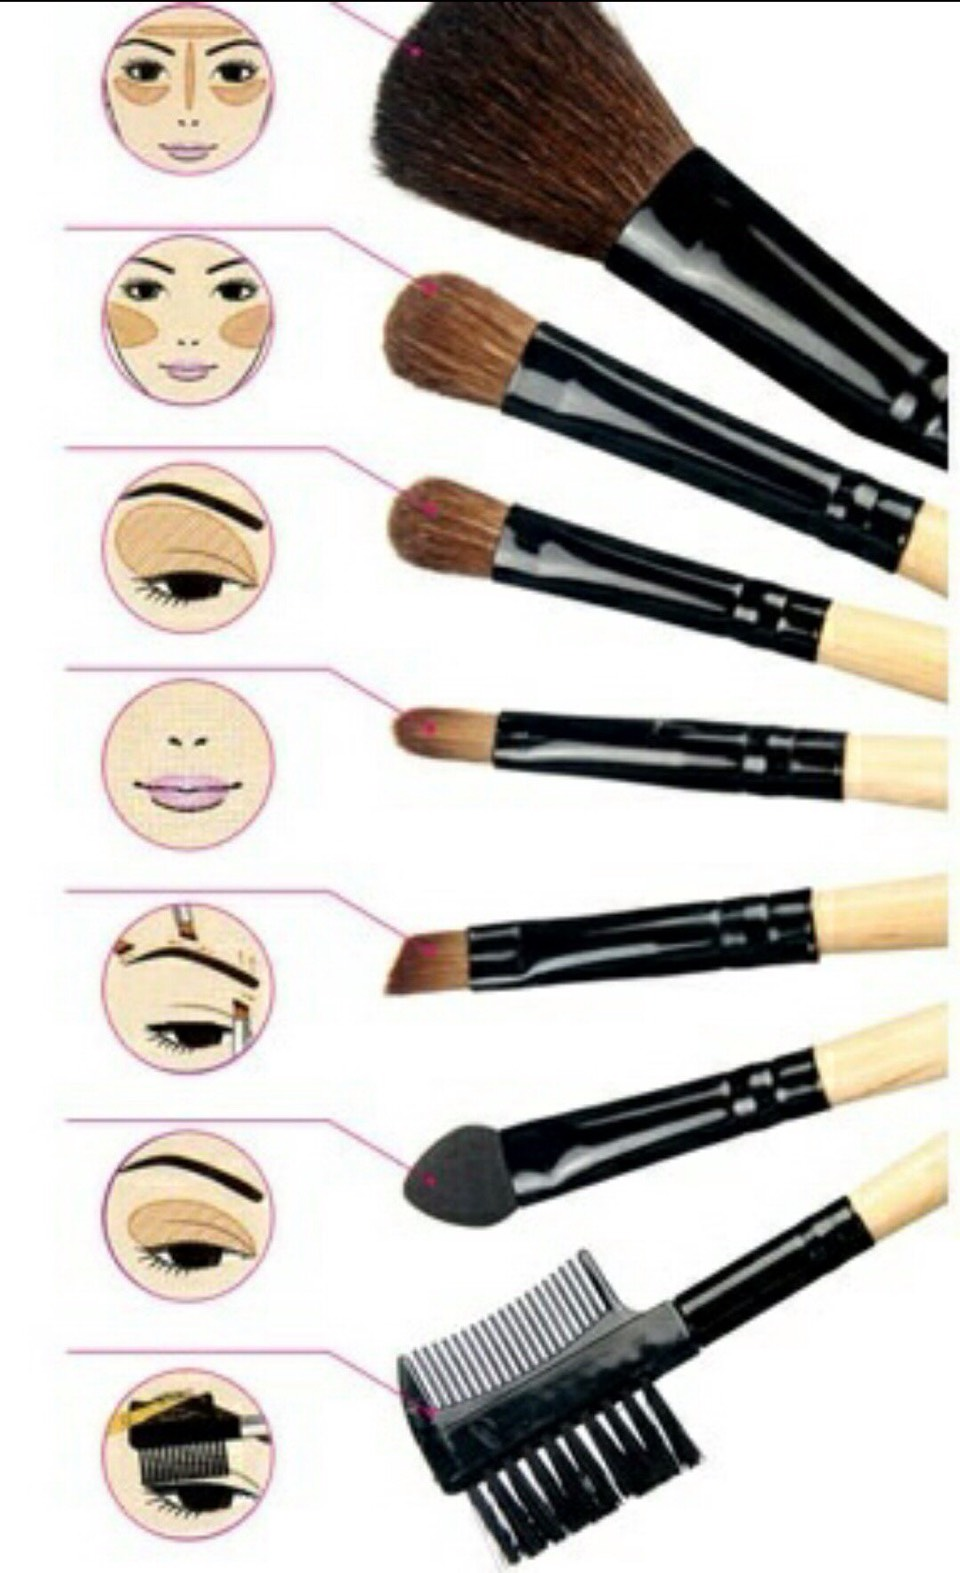 Use the right brushes